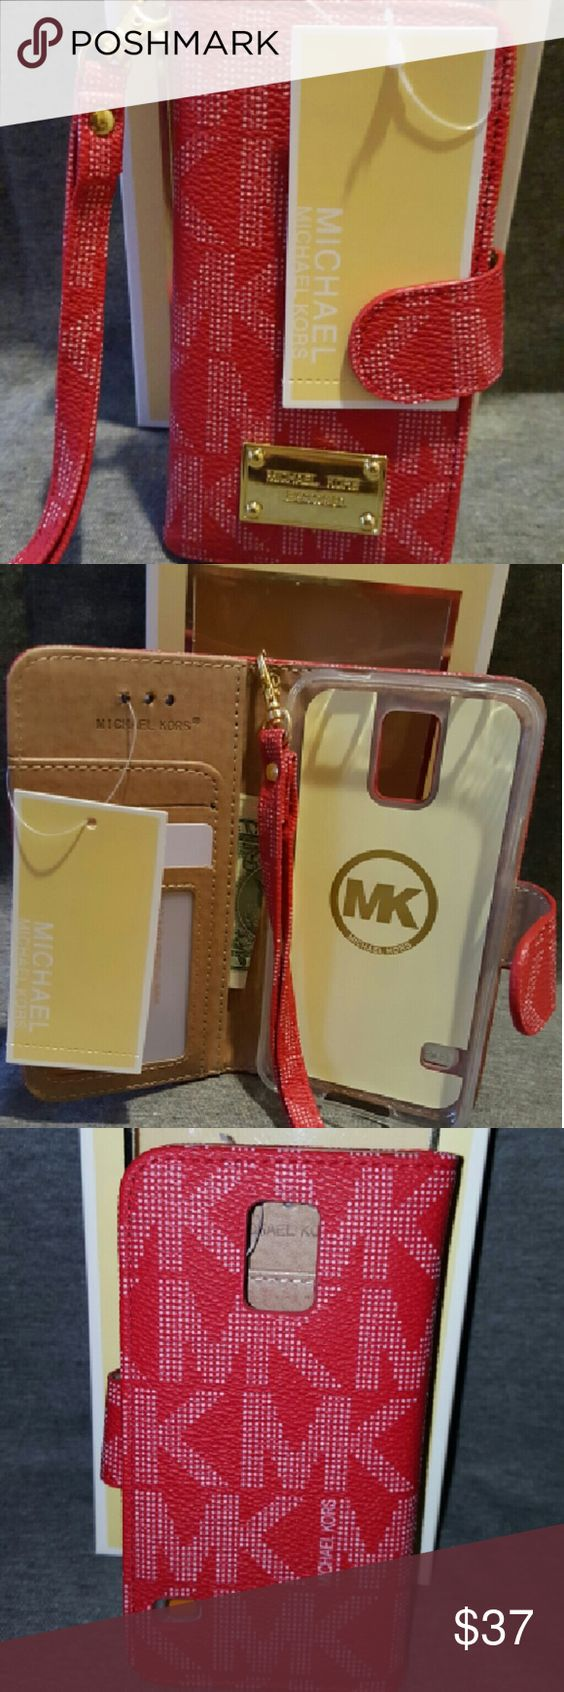 Case wallet galaxy s5 red color New mk case wallet galaxy s5 red Michael Kors Accessories Watches